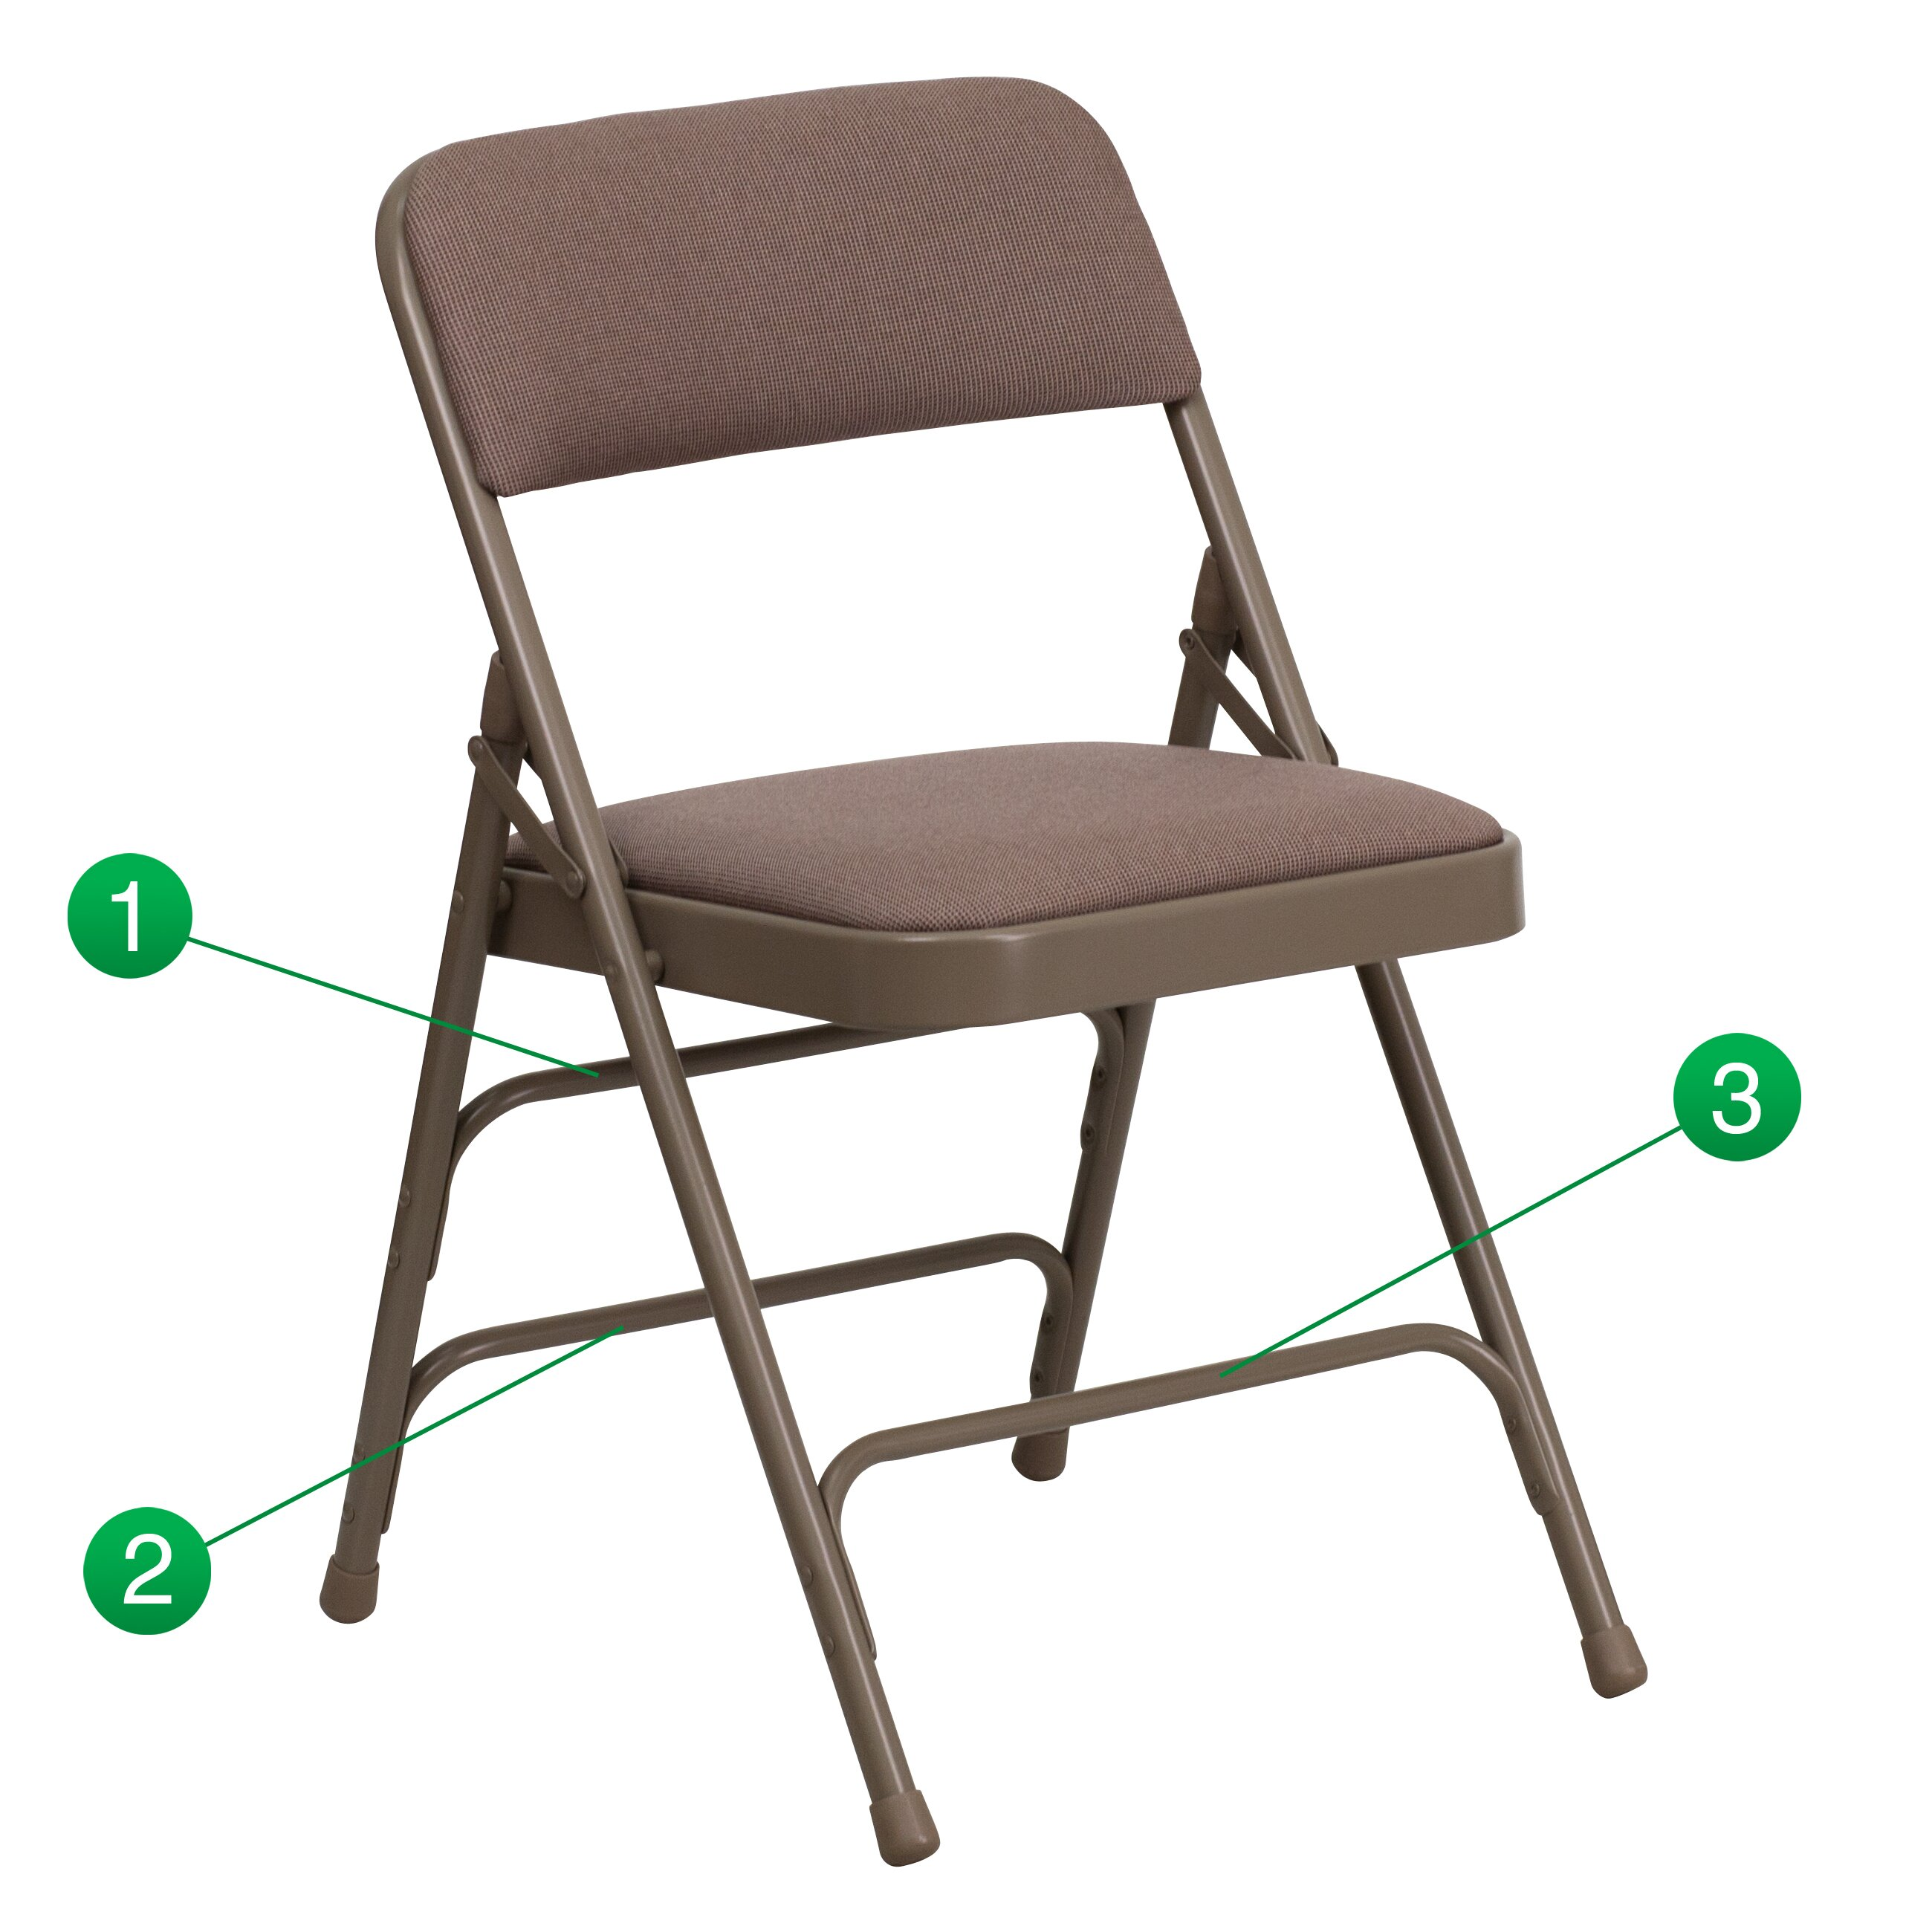 Flash Furniture Hercules Series Folding Chair & Reviews. Tempered Glass Desk. Height Adjustable Desk Diy. The Desk Bullion. Magnussen Coffee Table. Coffee Shop Tables. How To Clean Your Desk. Parsons Coffee Table. Bunk Bed And Desk